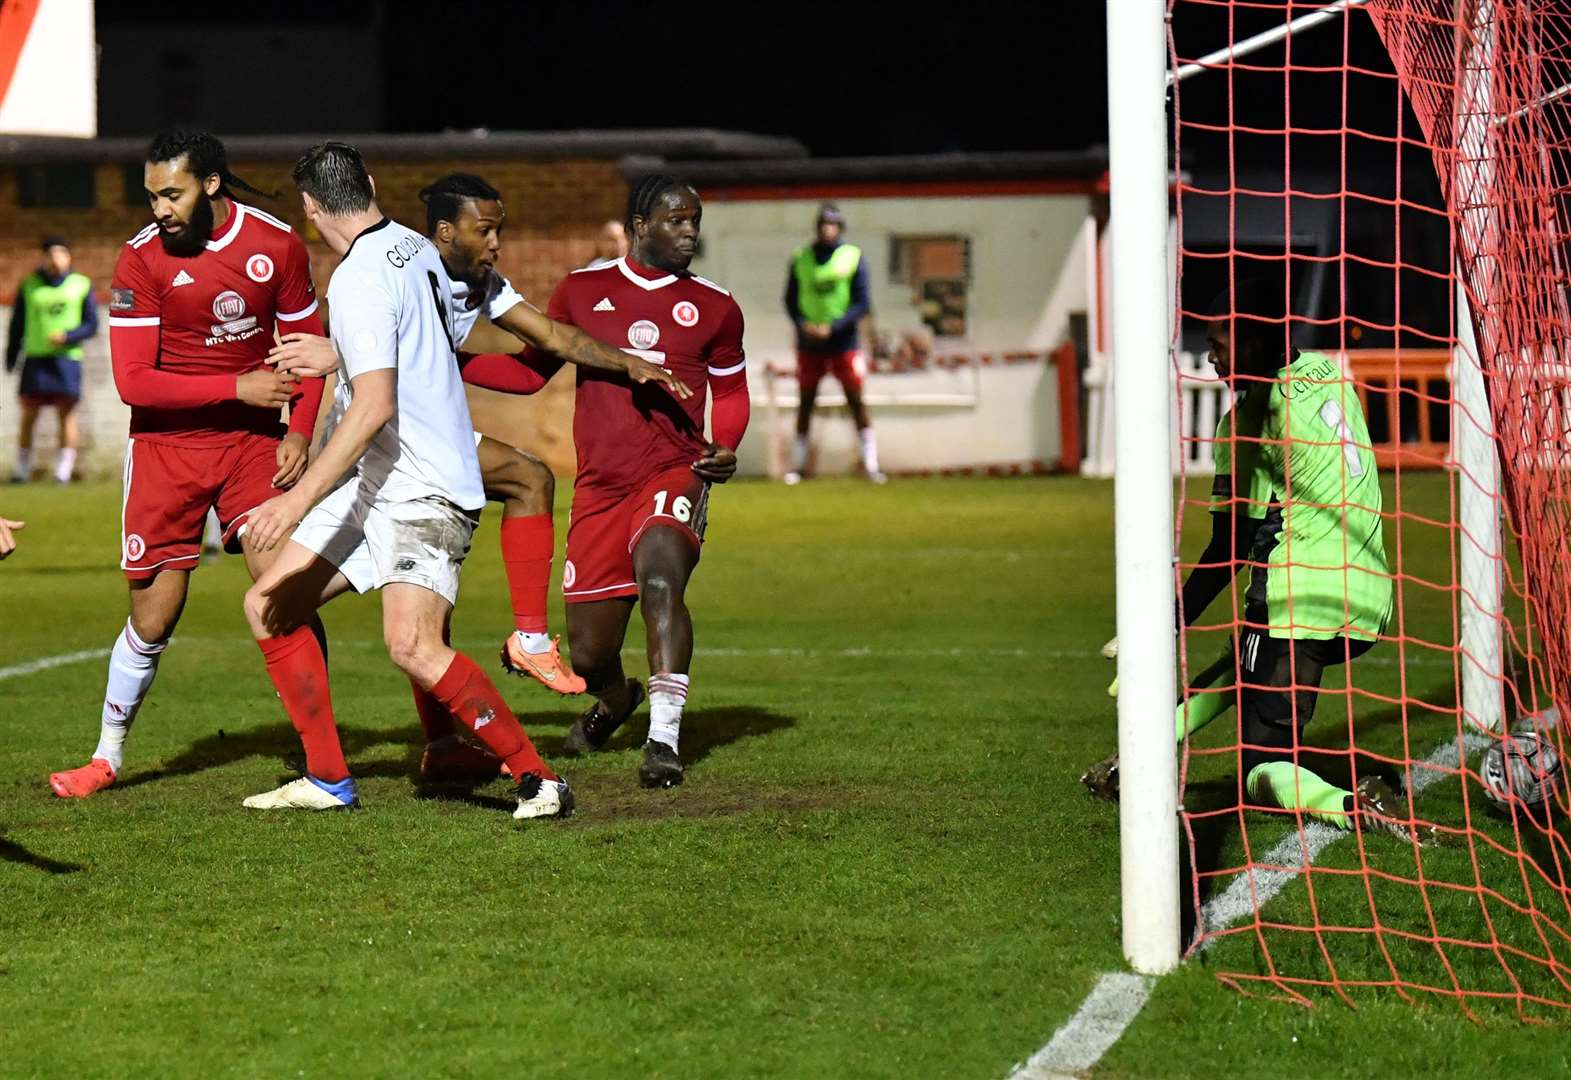 Striker Dom staying with Ebbsfleet